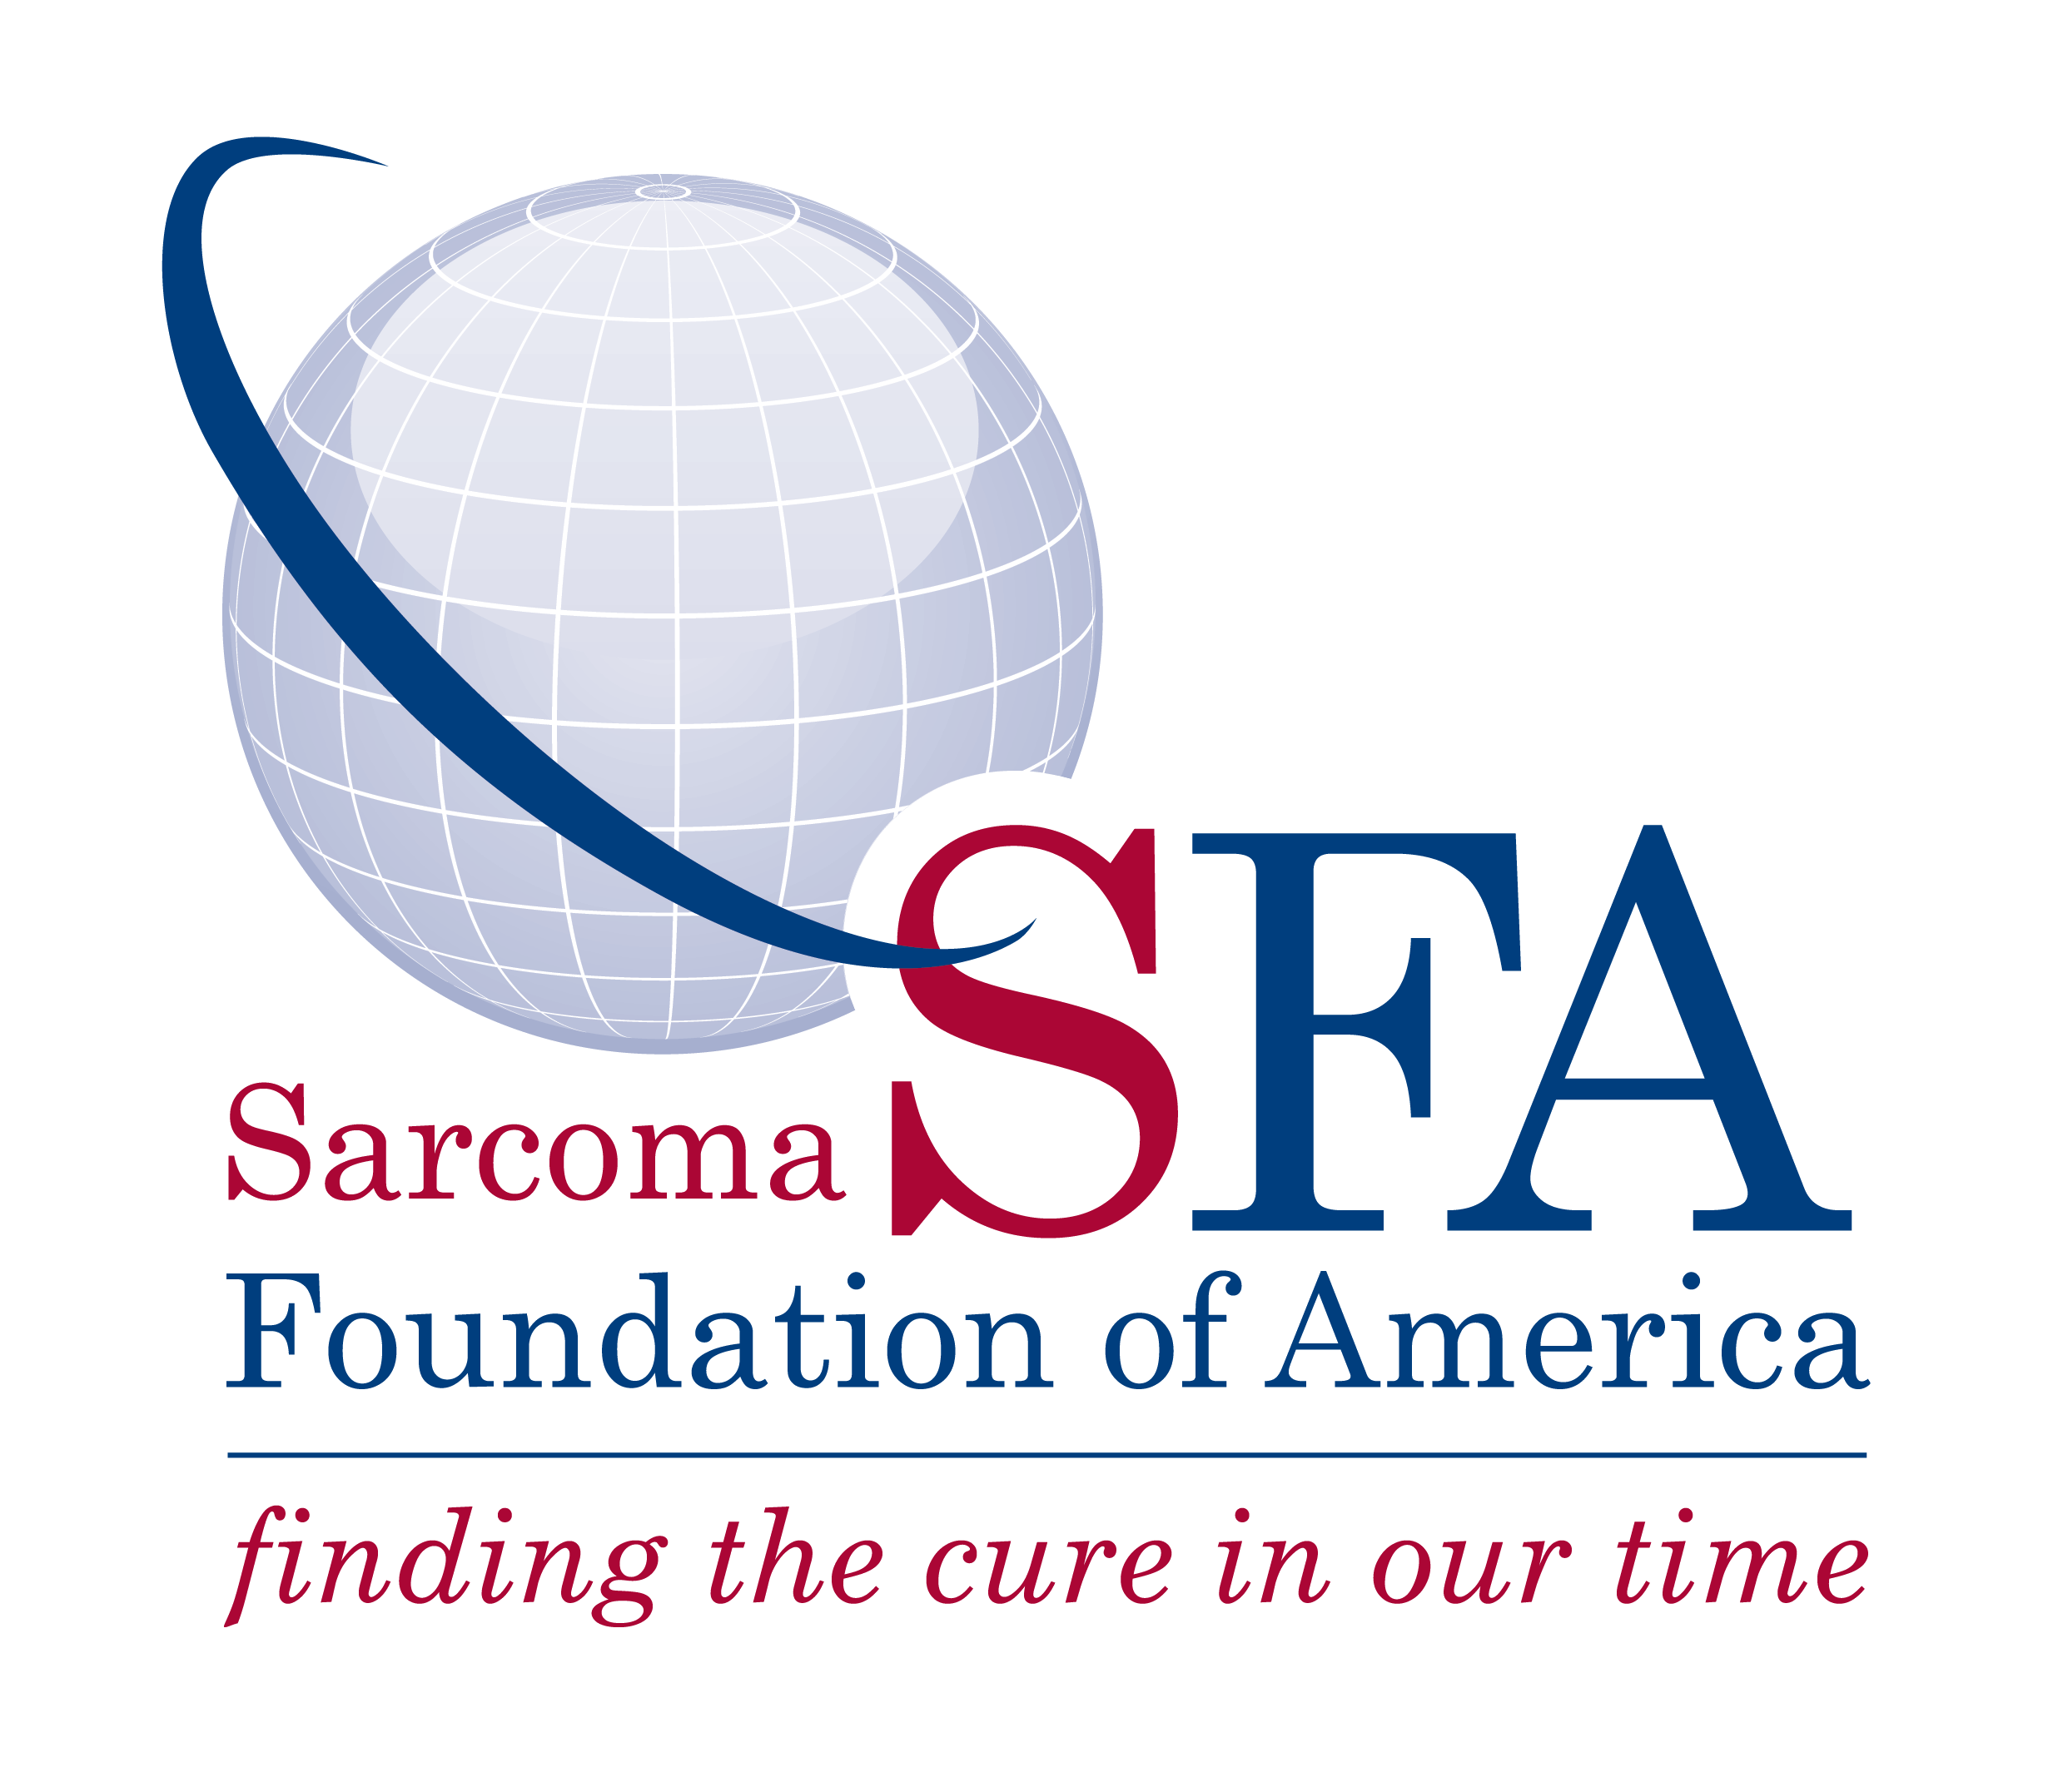 Sarcoma Foundation of America - Celebrating 20 Years - Est. 2000